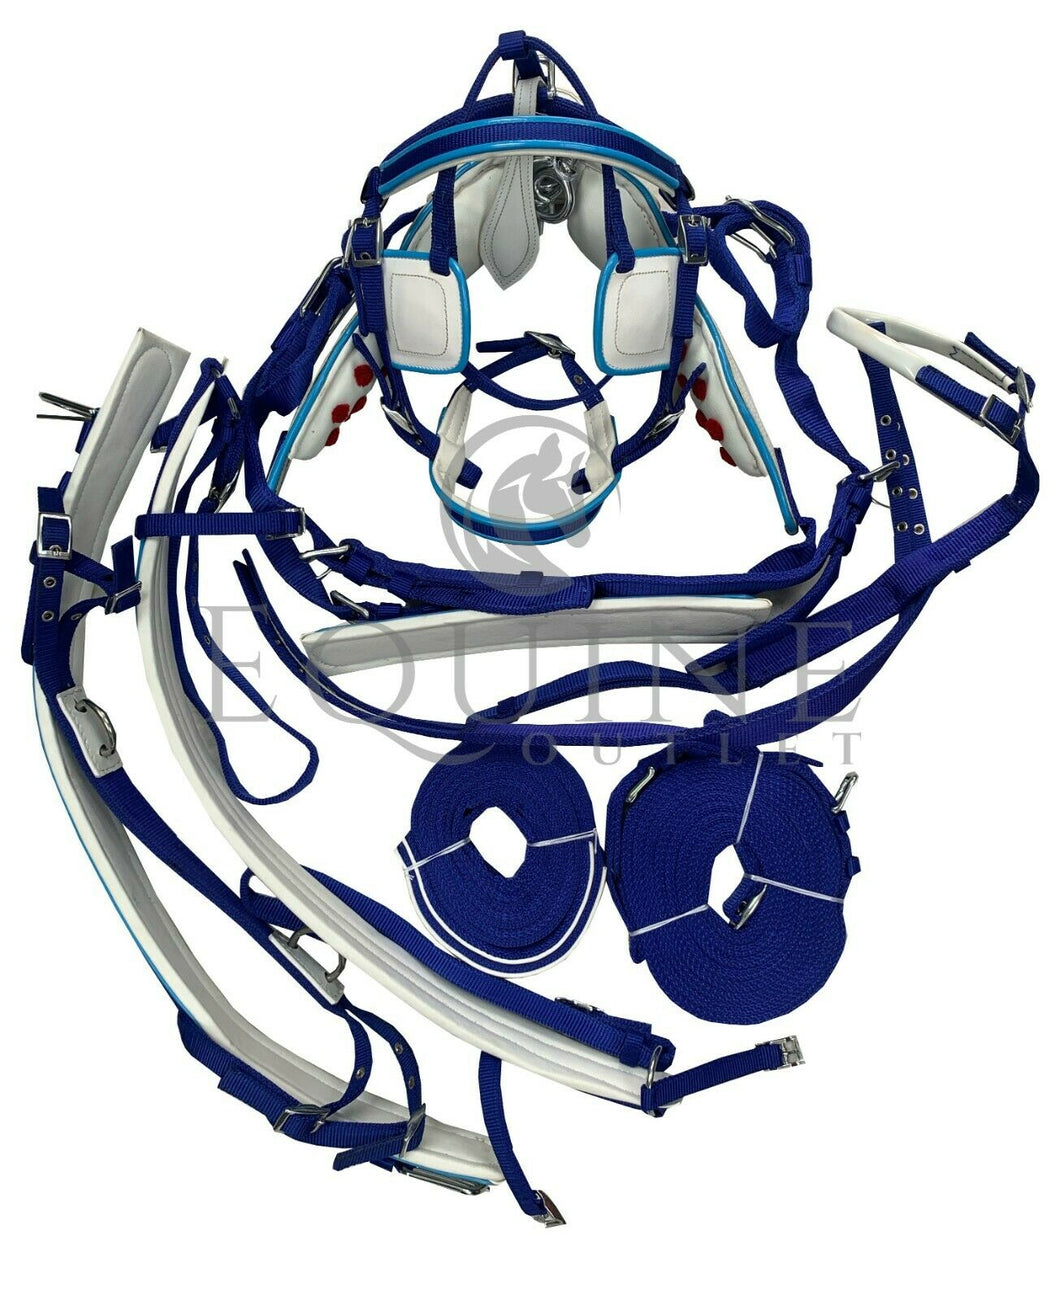 Deluxe Webbing Driving Harness - Blue With White Detailing